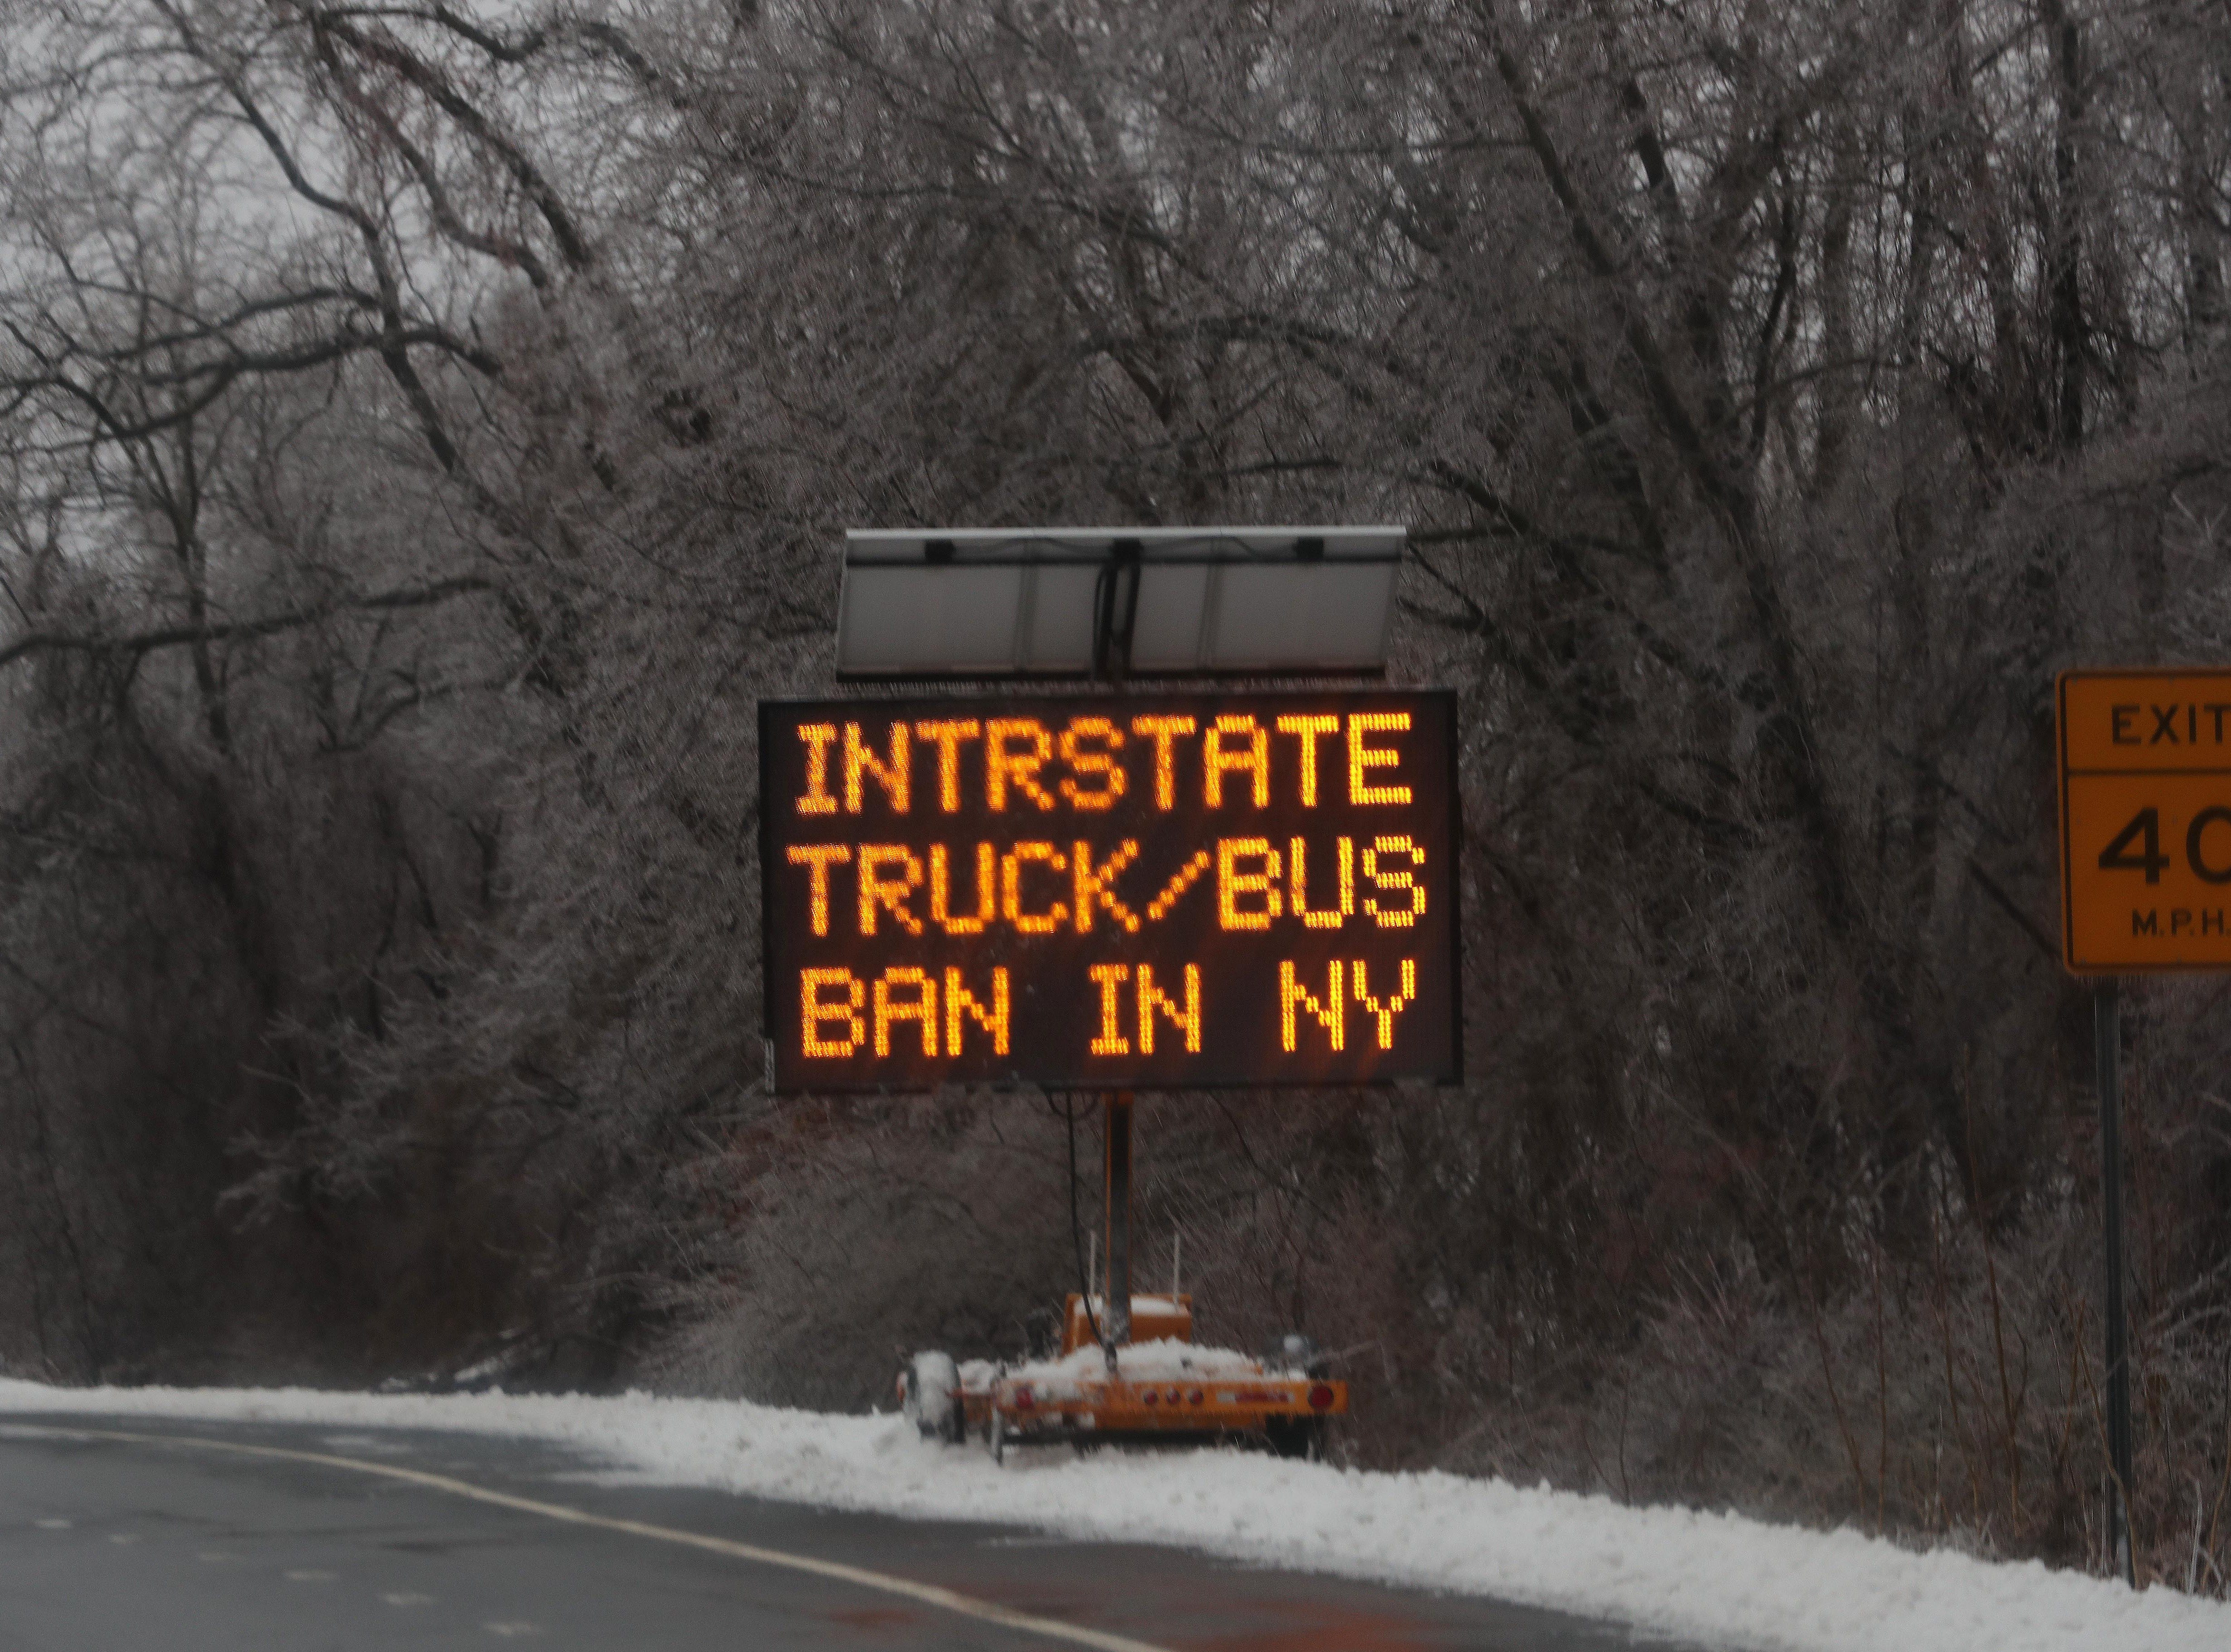 A sign at the entrance to I-684 in Southeast warning trucks and buses of the ban on interstate highways in New York Jan. 20, 2019.